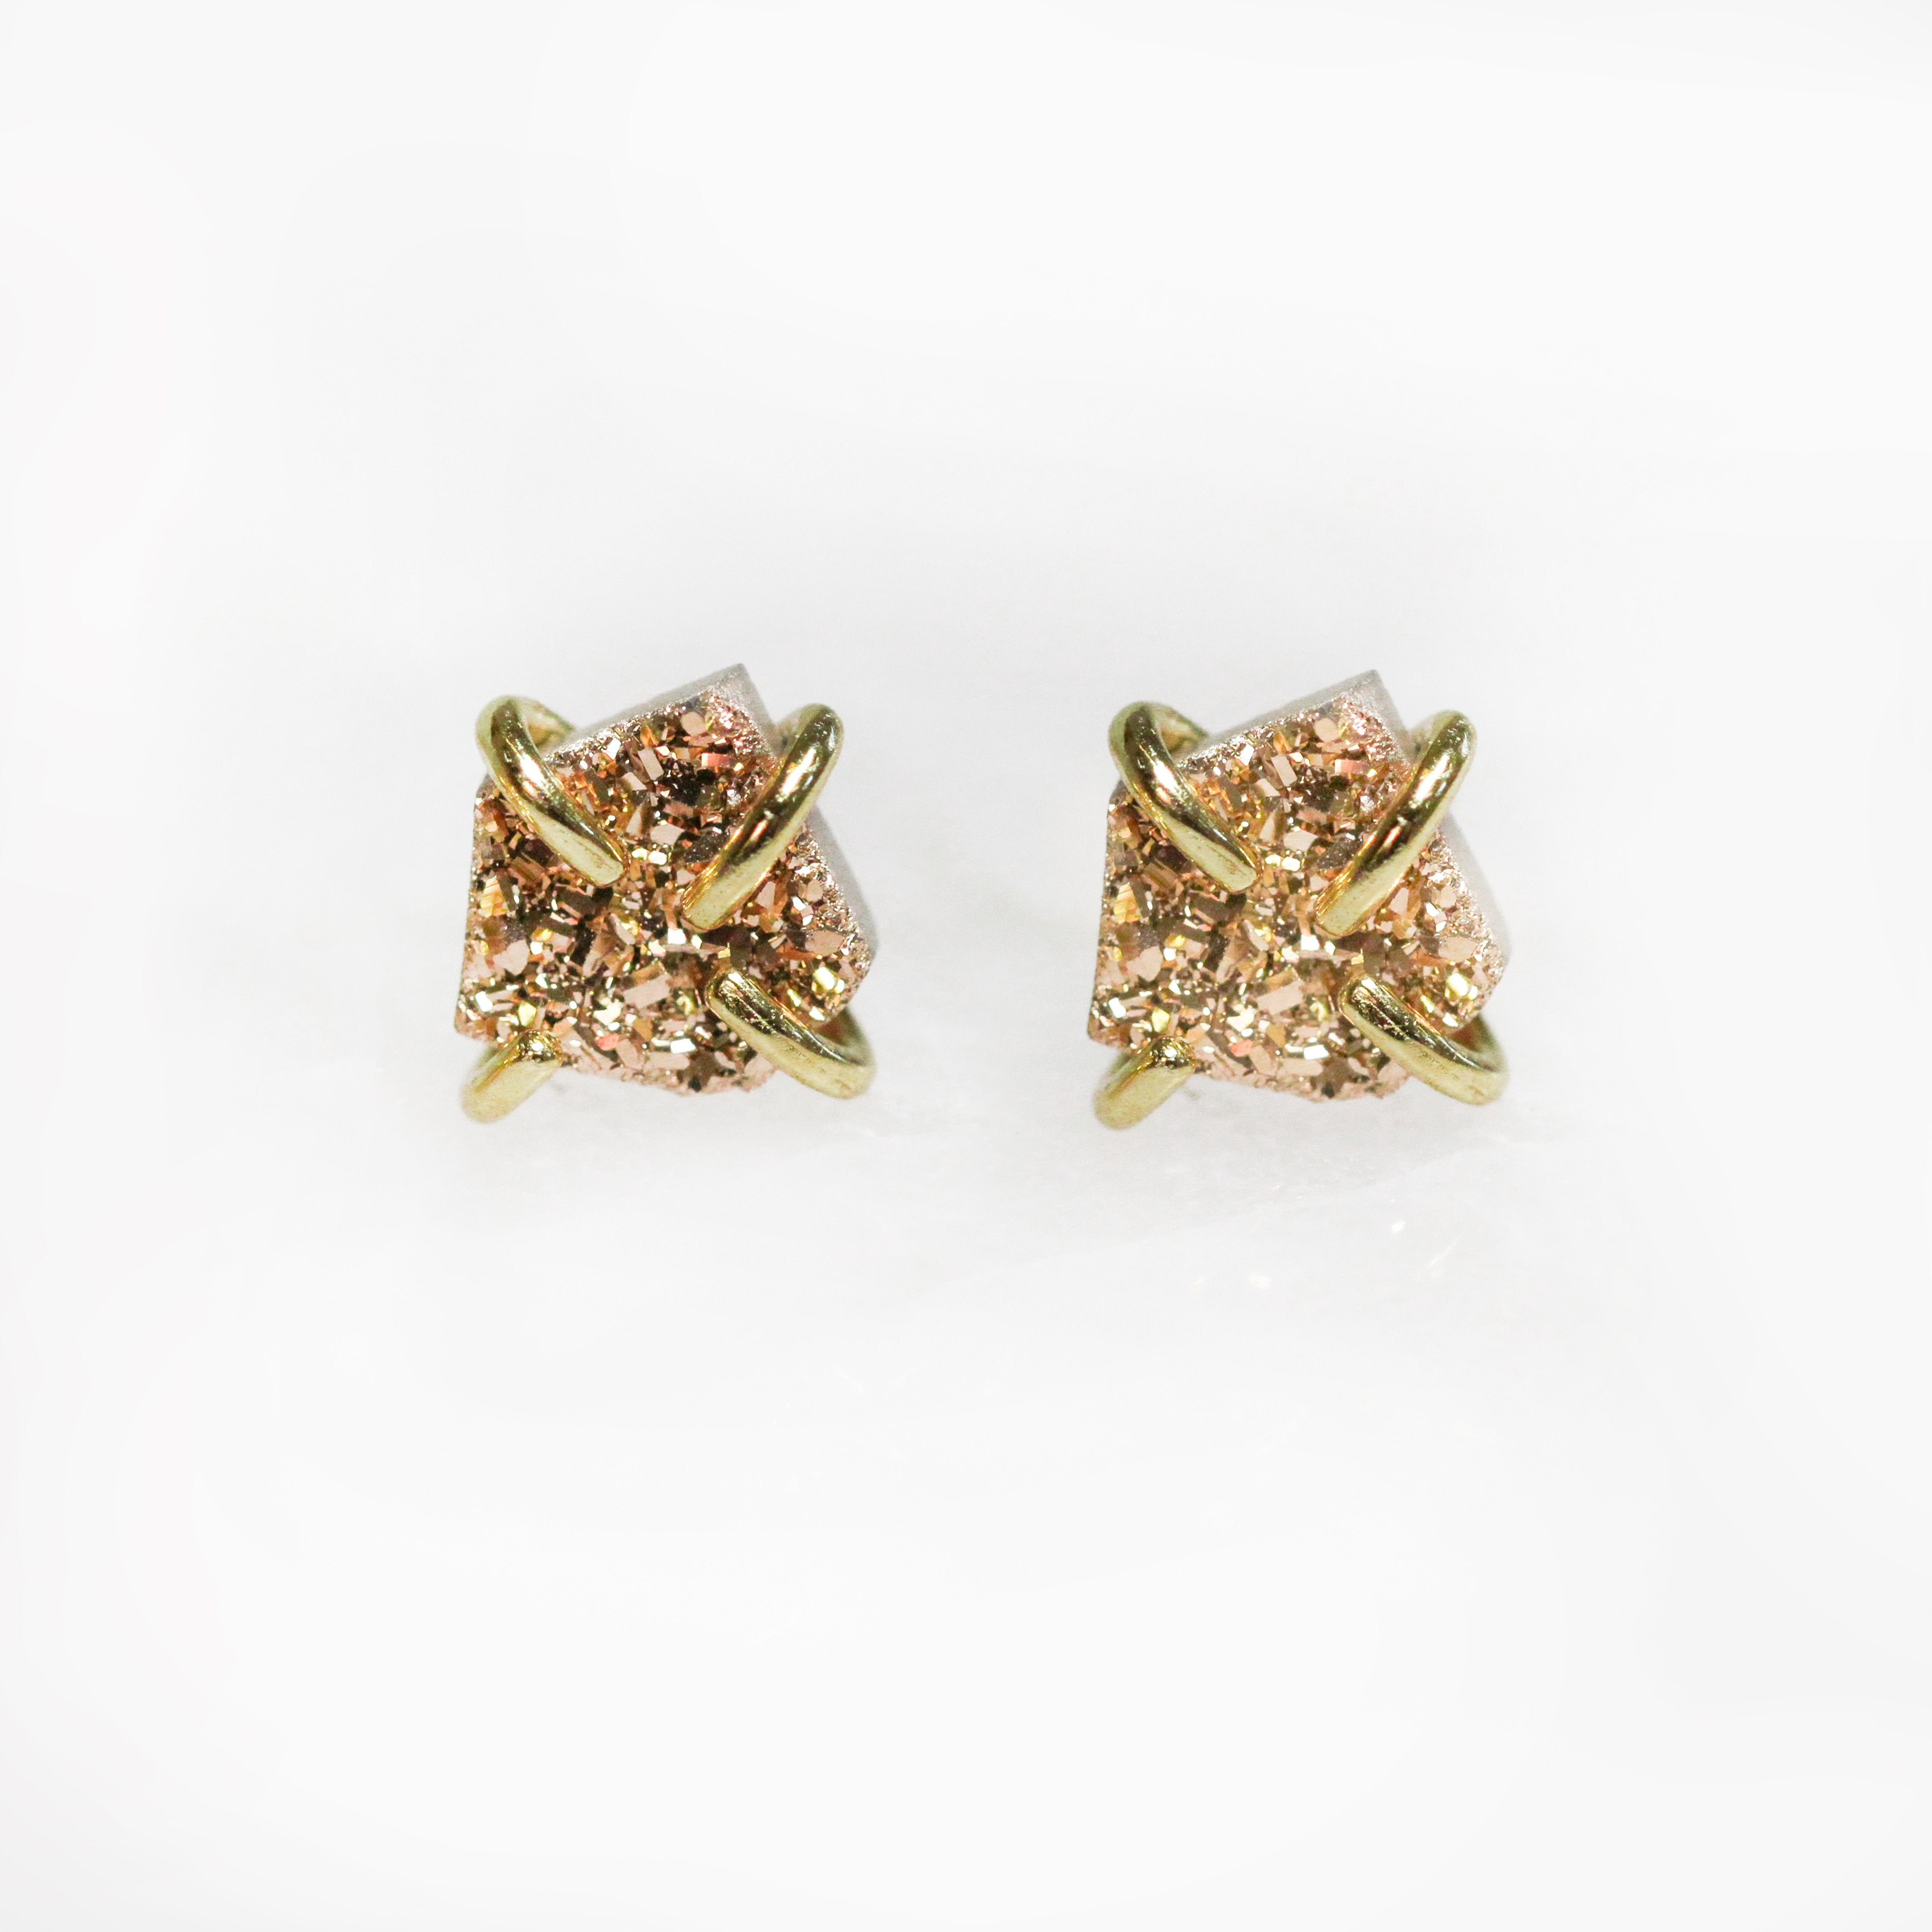 JaxKelly Rose Gold Druzy Prong Earrings (sterling silver 18K gold plated prong)